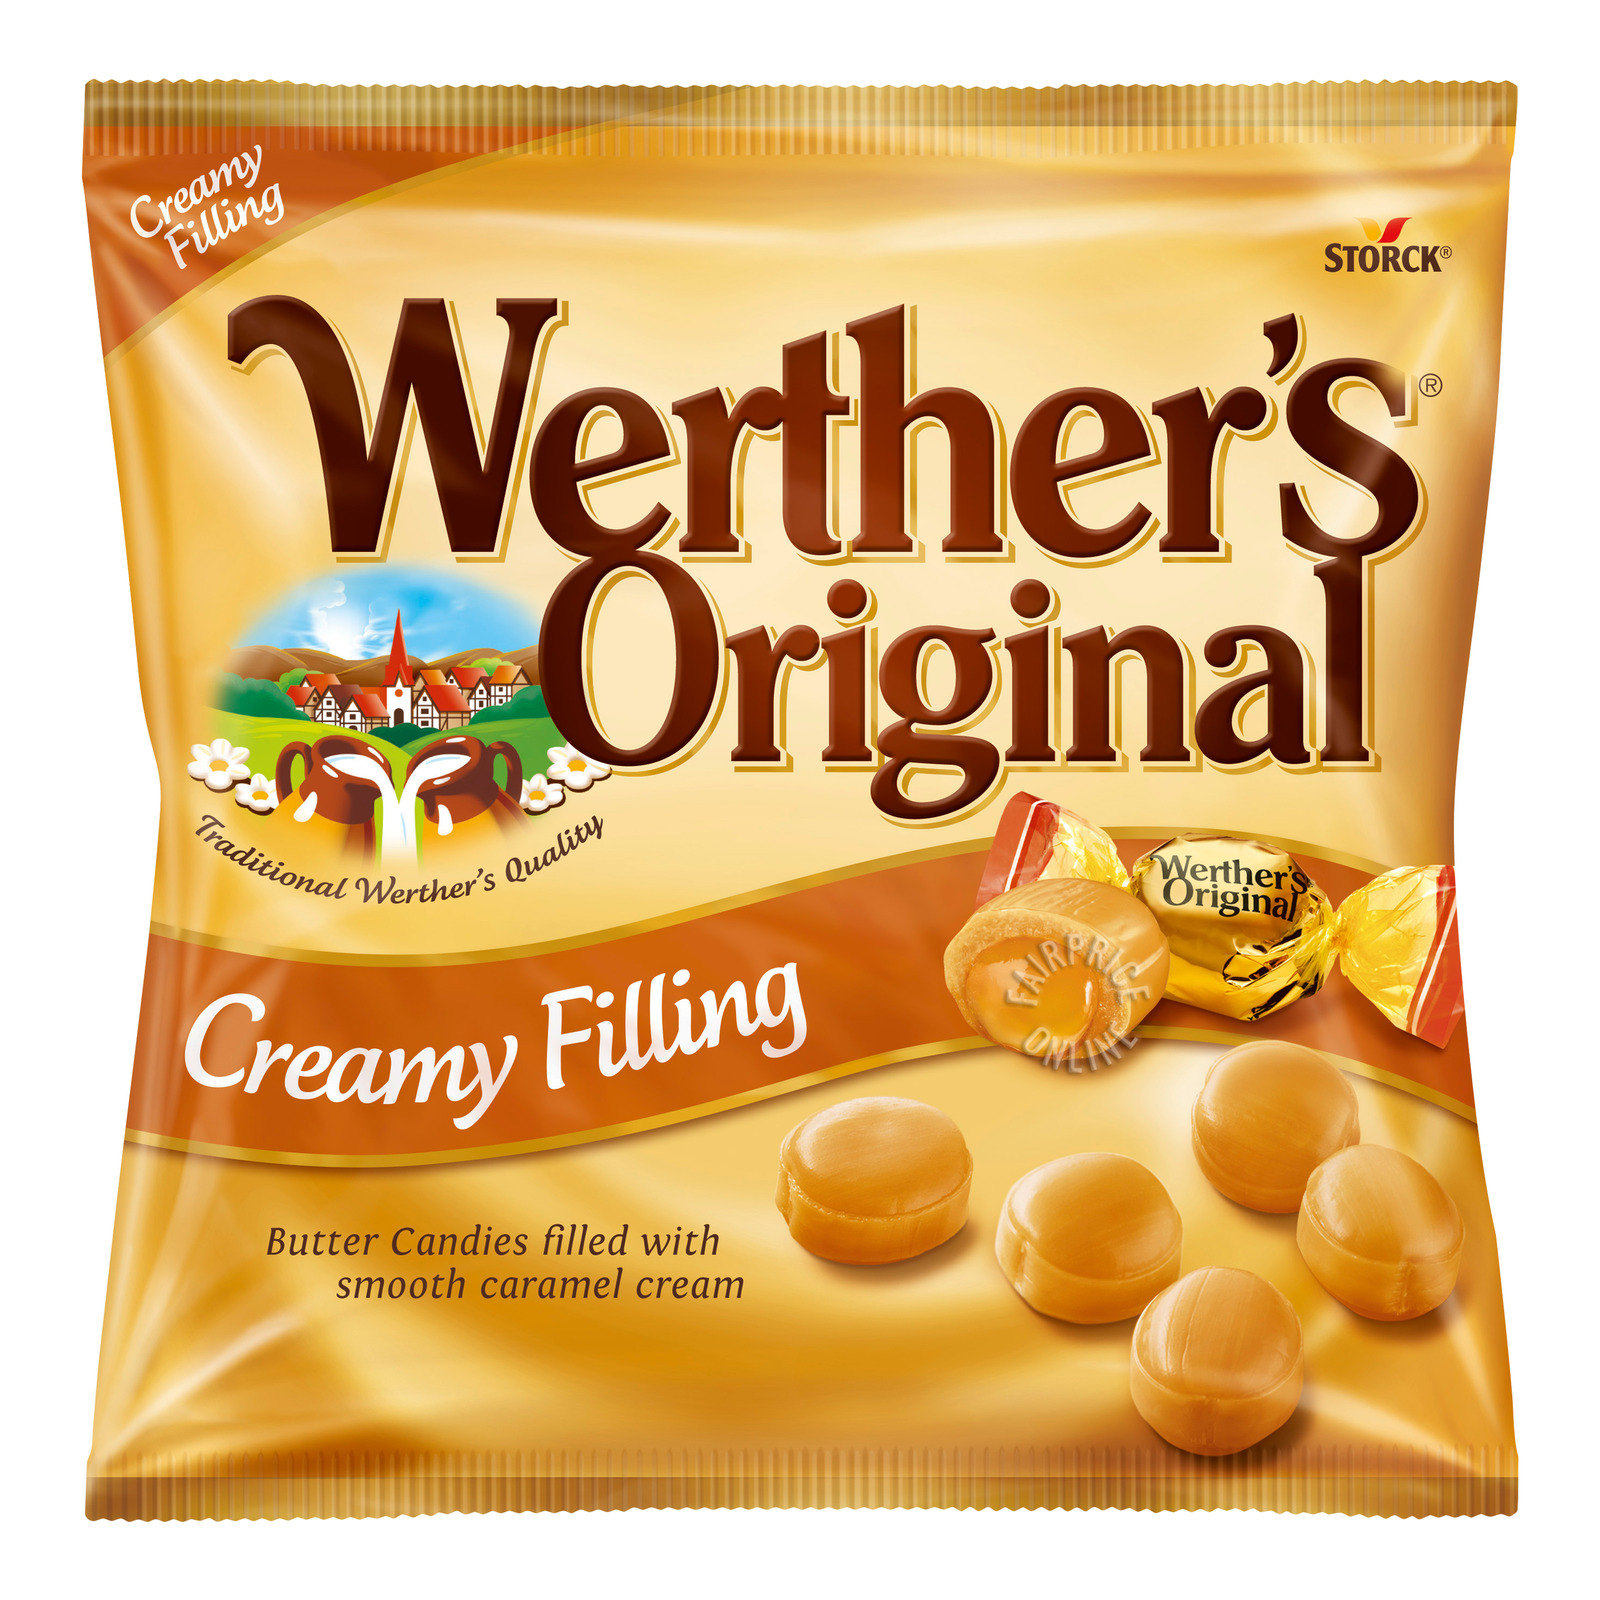 Storck Werther's Original Cream Candies - Caramel